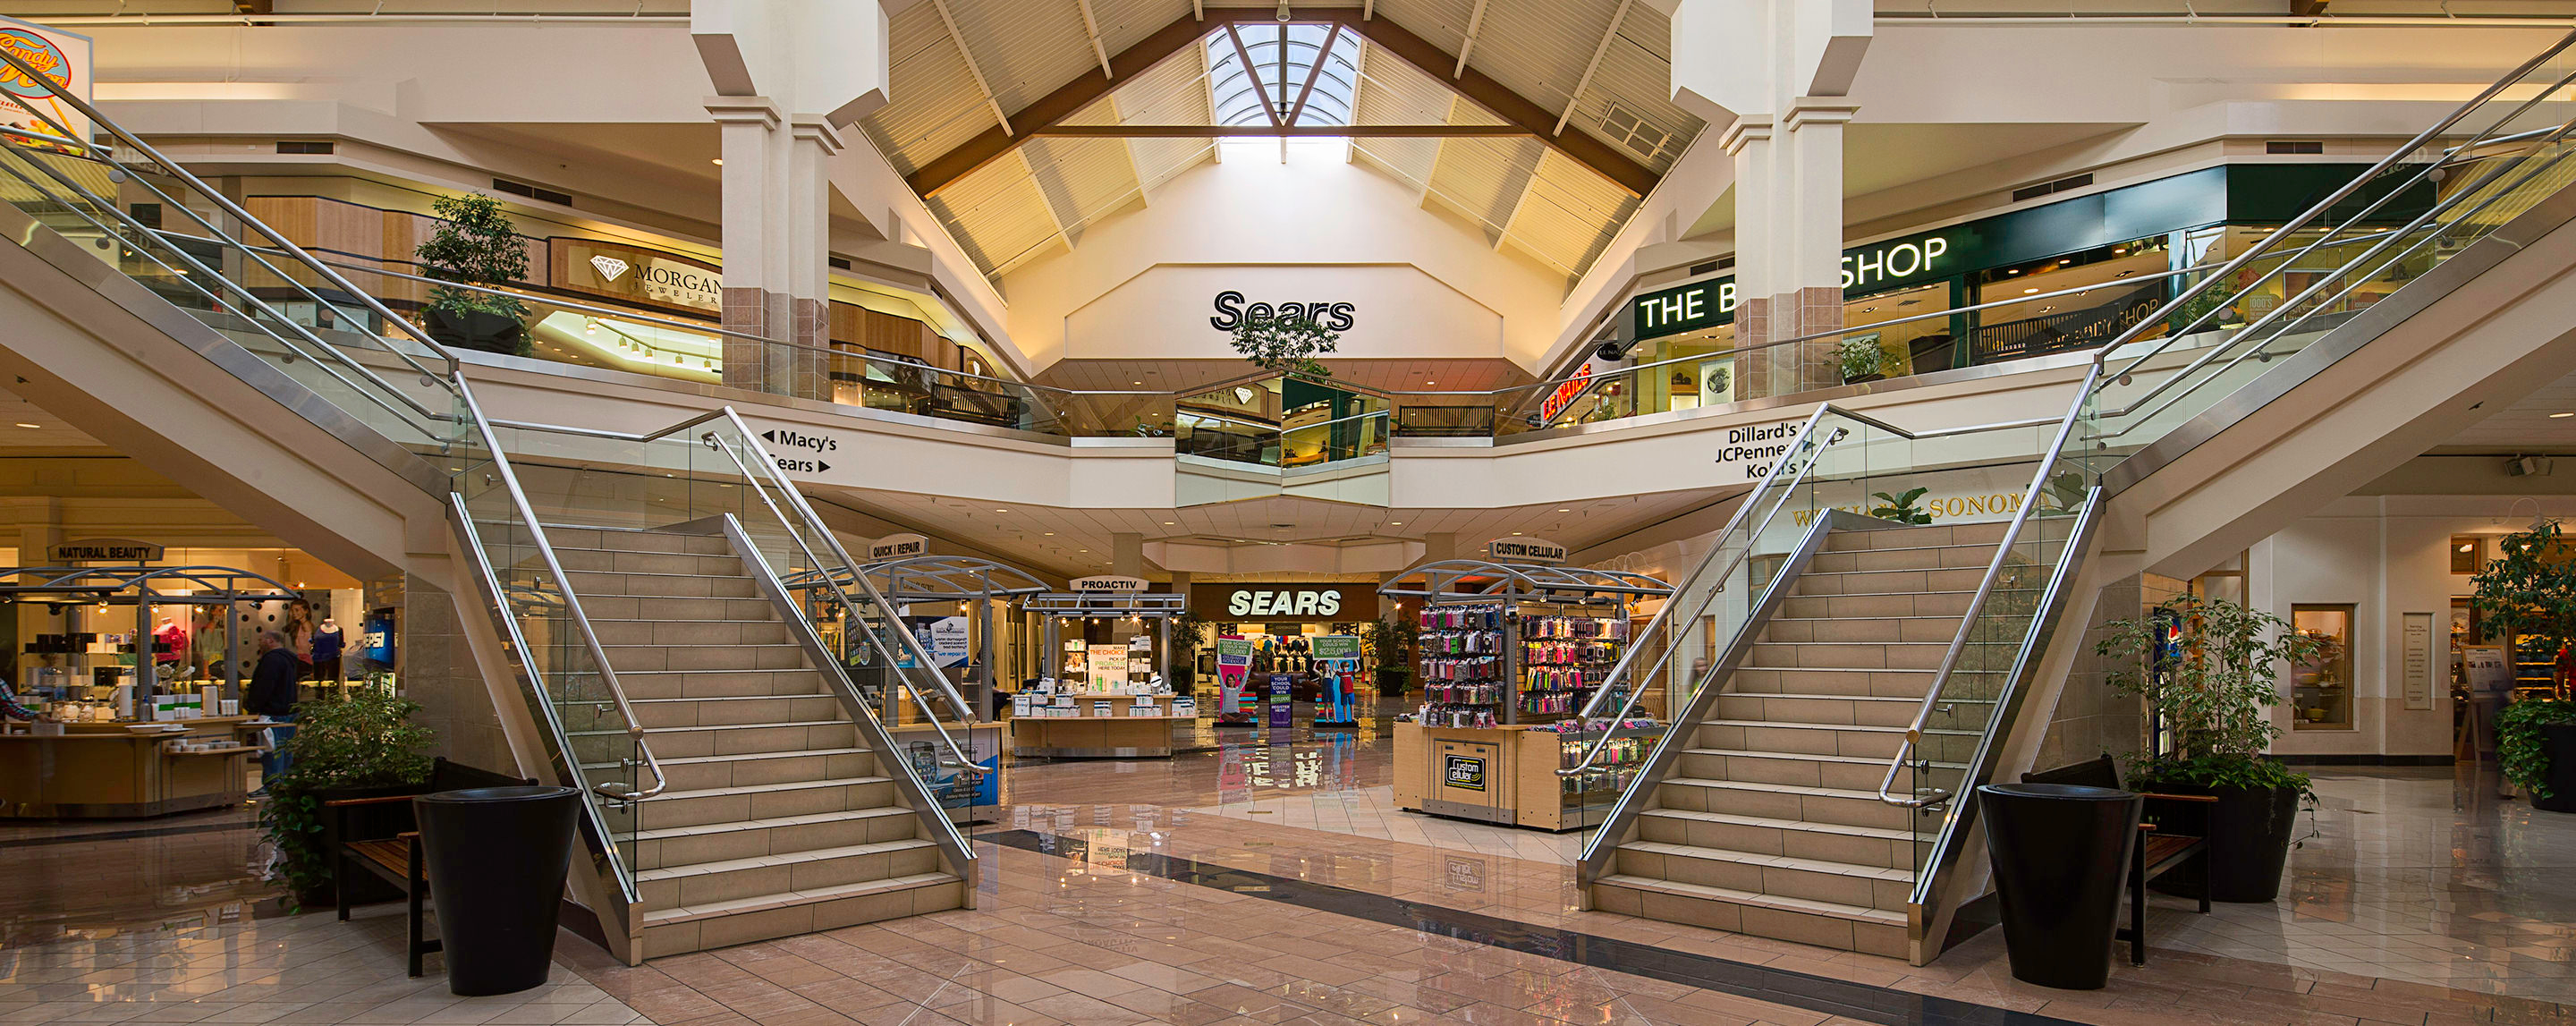 Fashion square mall in orlando 60